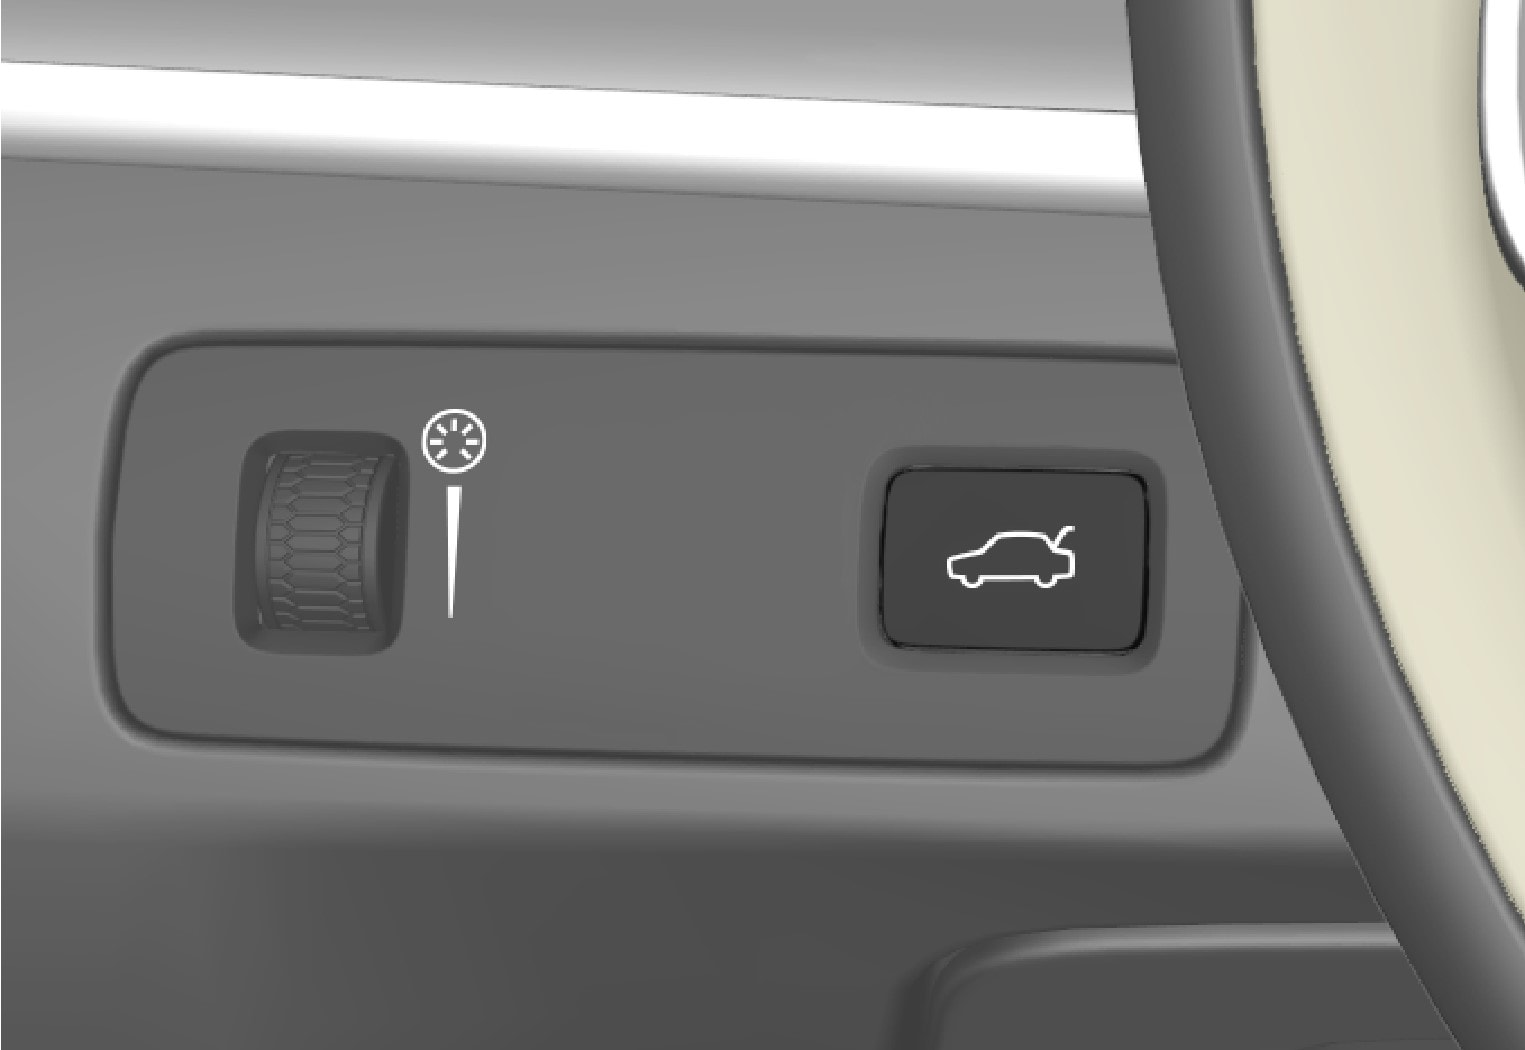 P5-1507 Unlock/open tailgate with button from inside (without fuel filler cap-button)